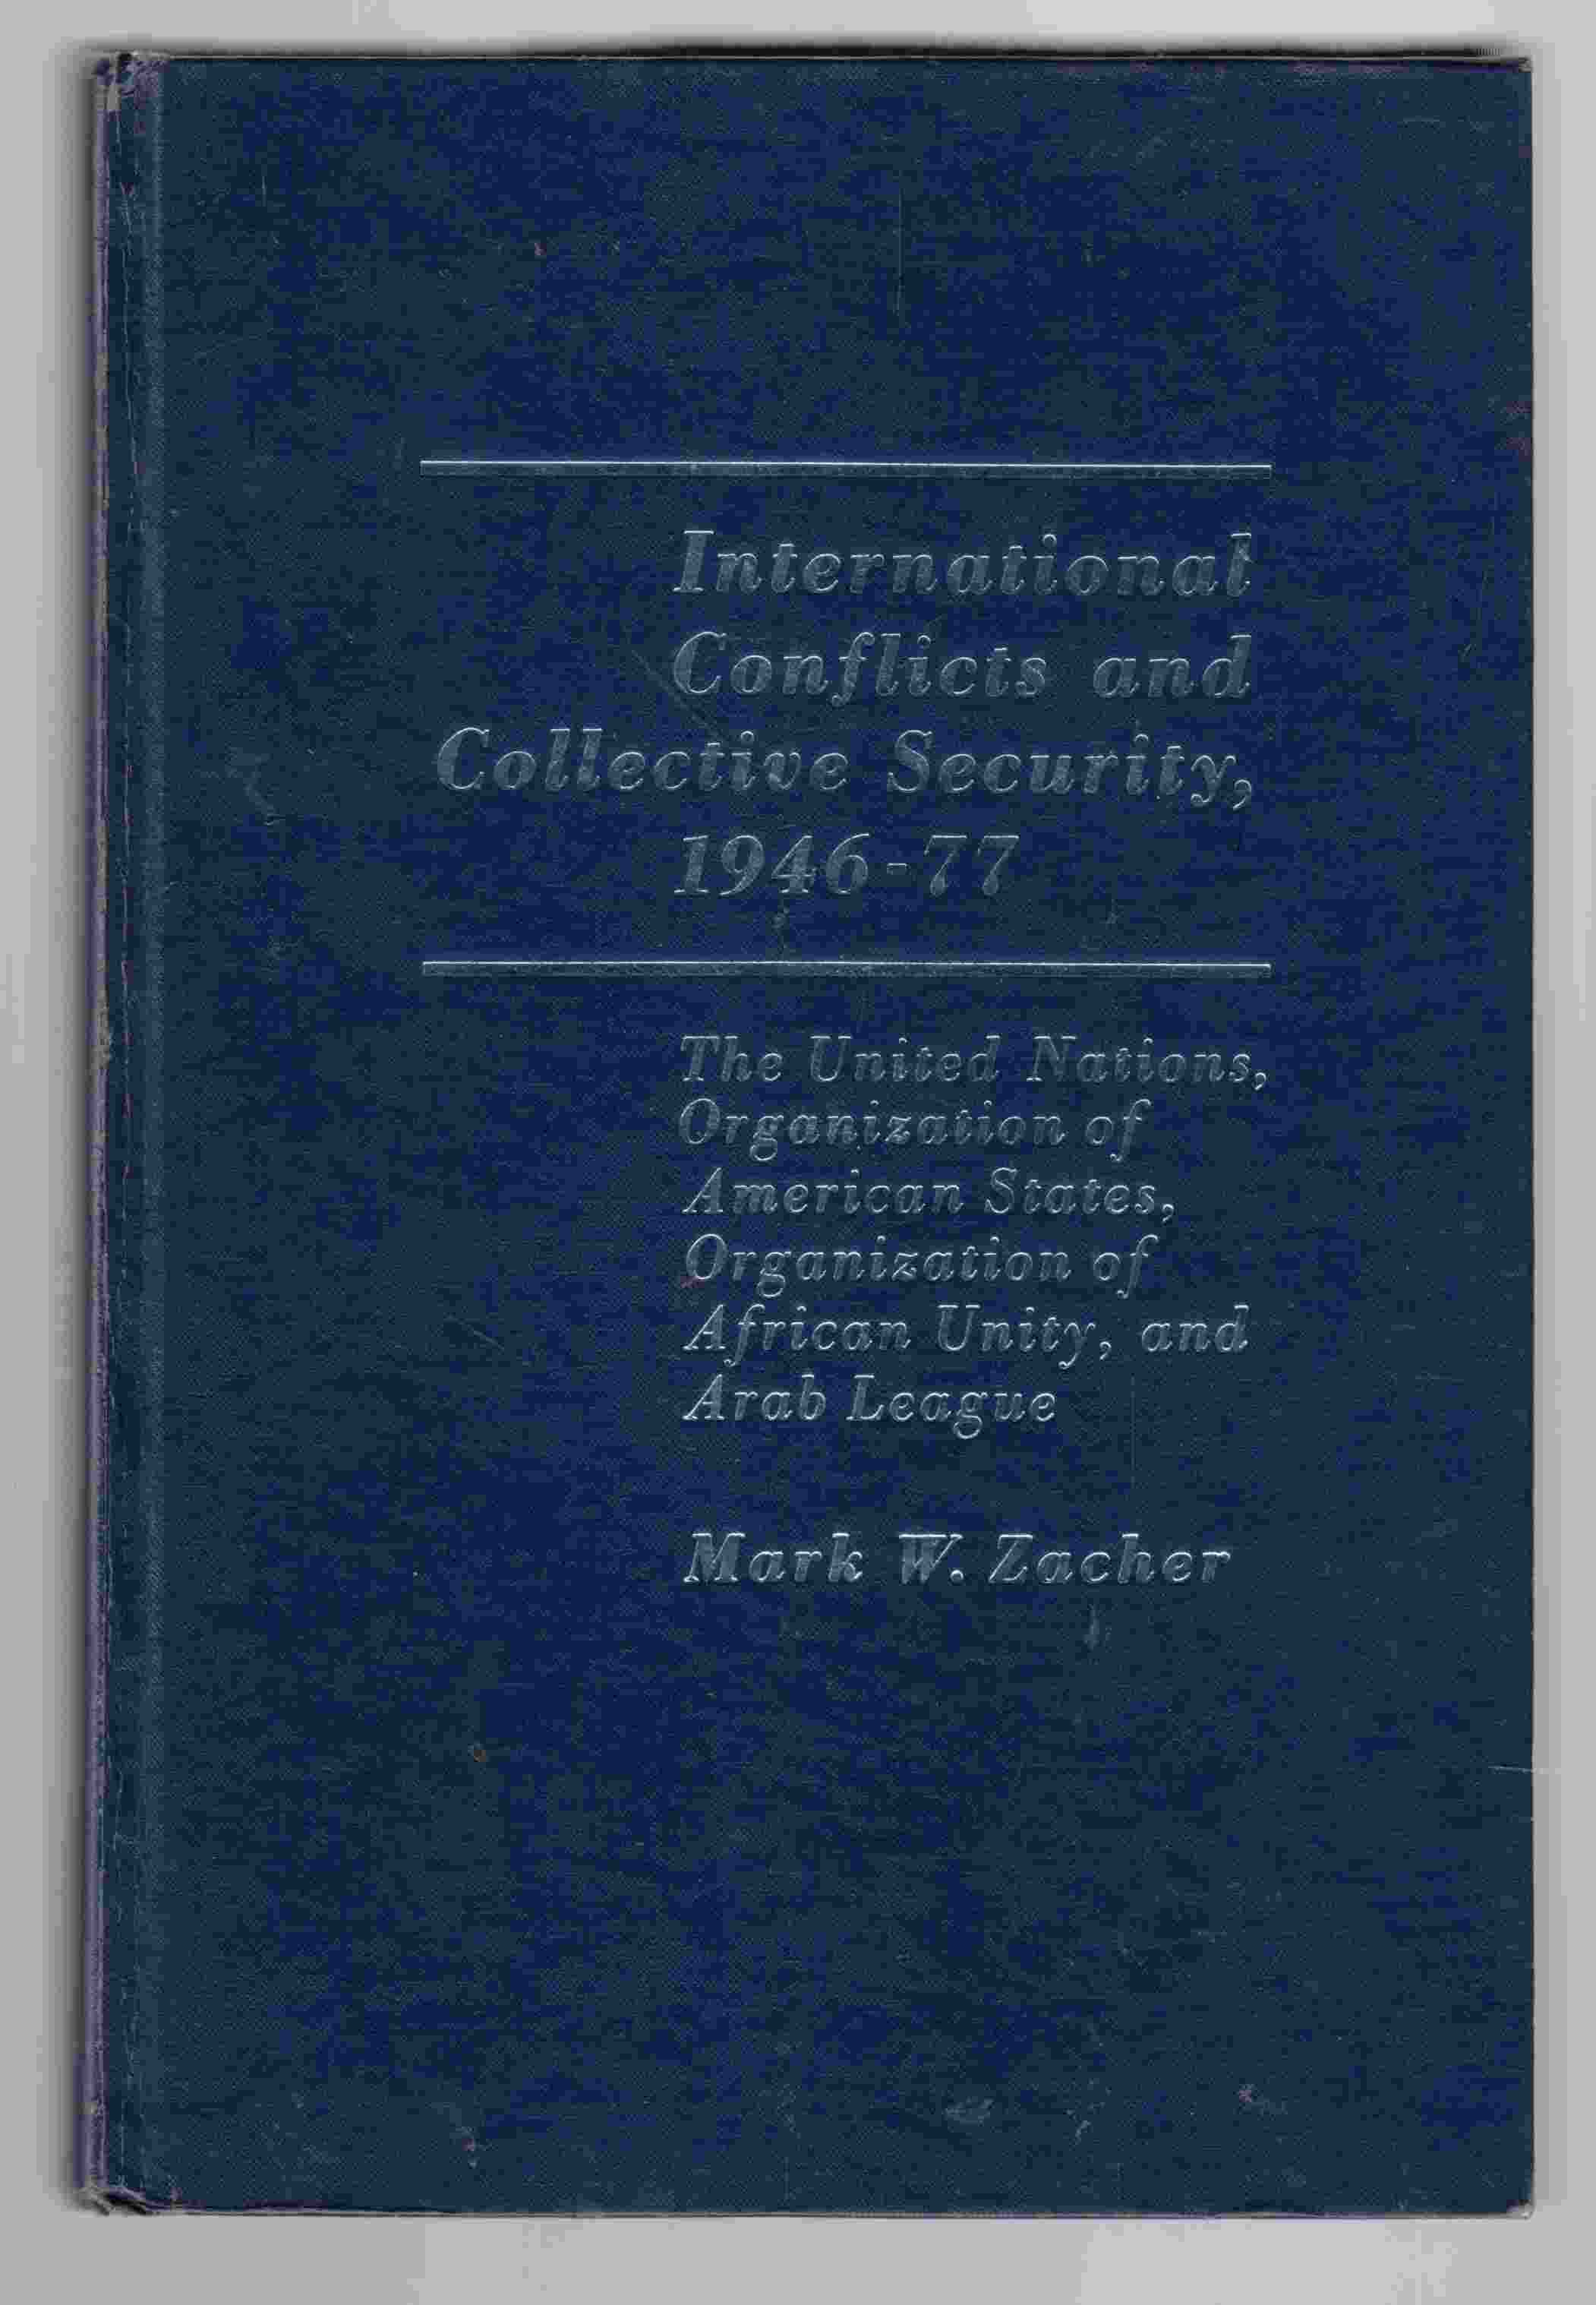 Image for International Conflicts and Collective Security, 1946-77 The United Nations, Organization of African States, Organization of African Unity, and Arab League